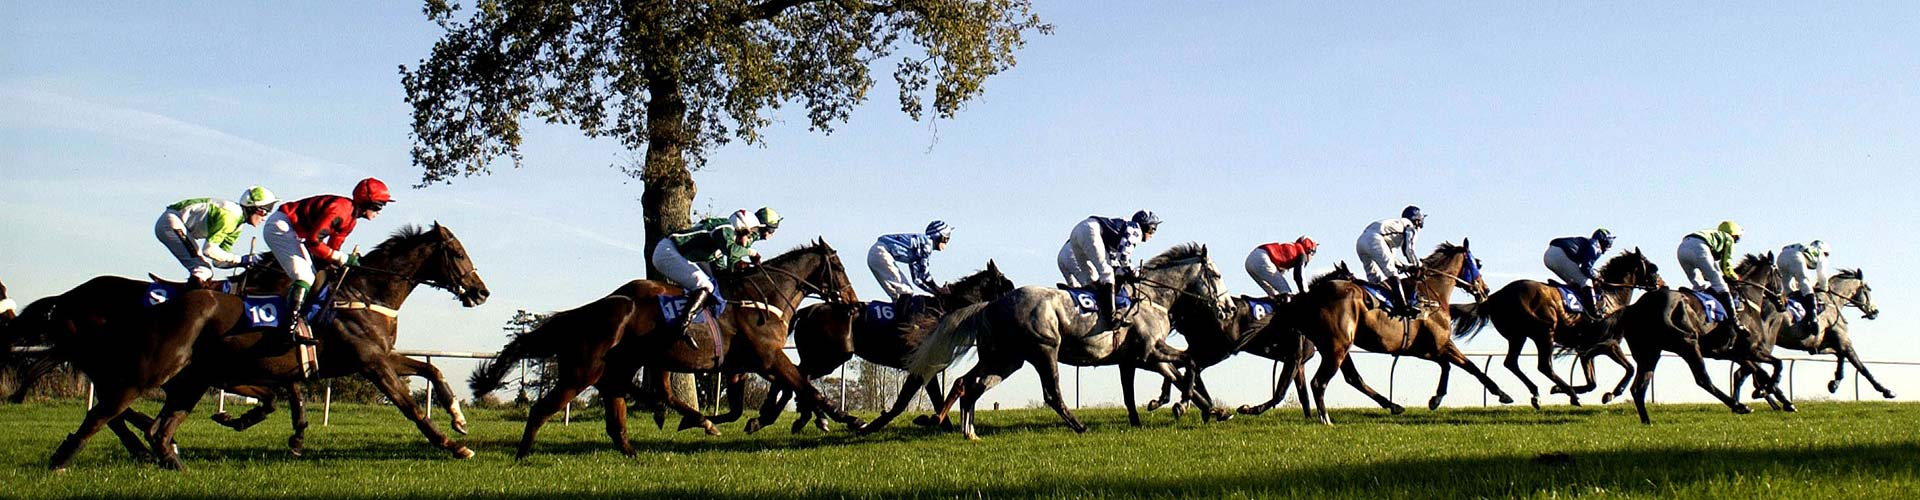 Annual Membership at Plumpton Racecourse